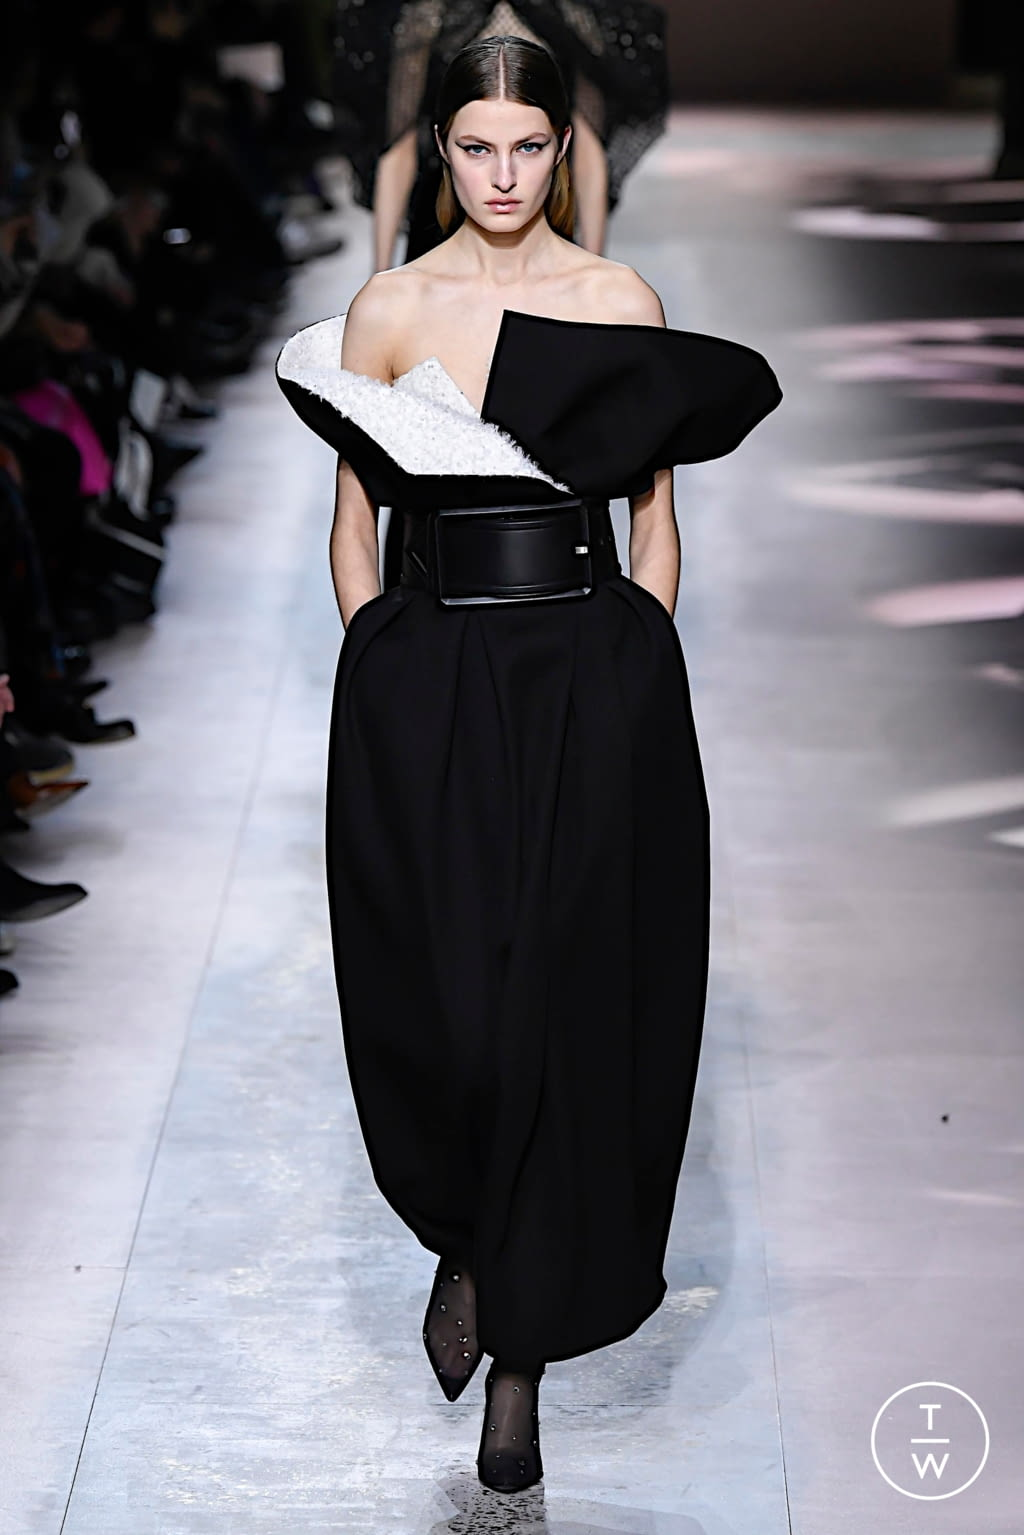 Givenchy SS20 couture 20   The Fashion Search Engine   TAGWALK